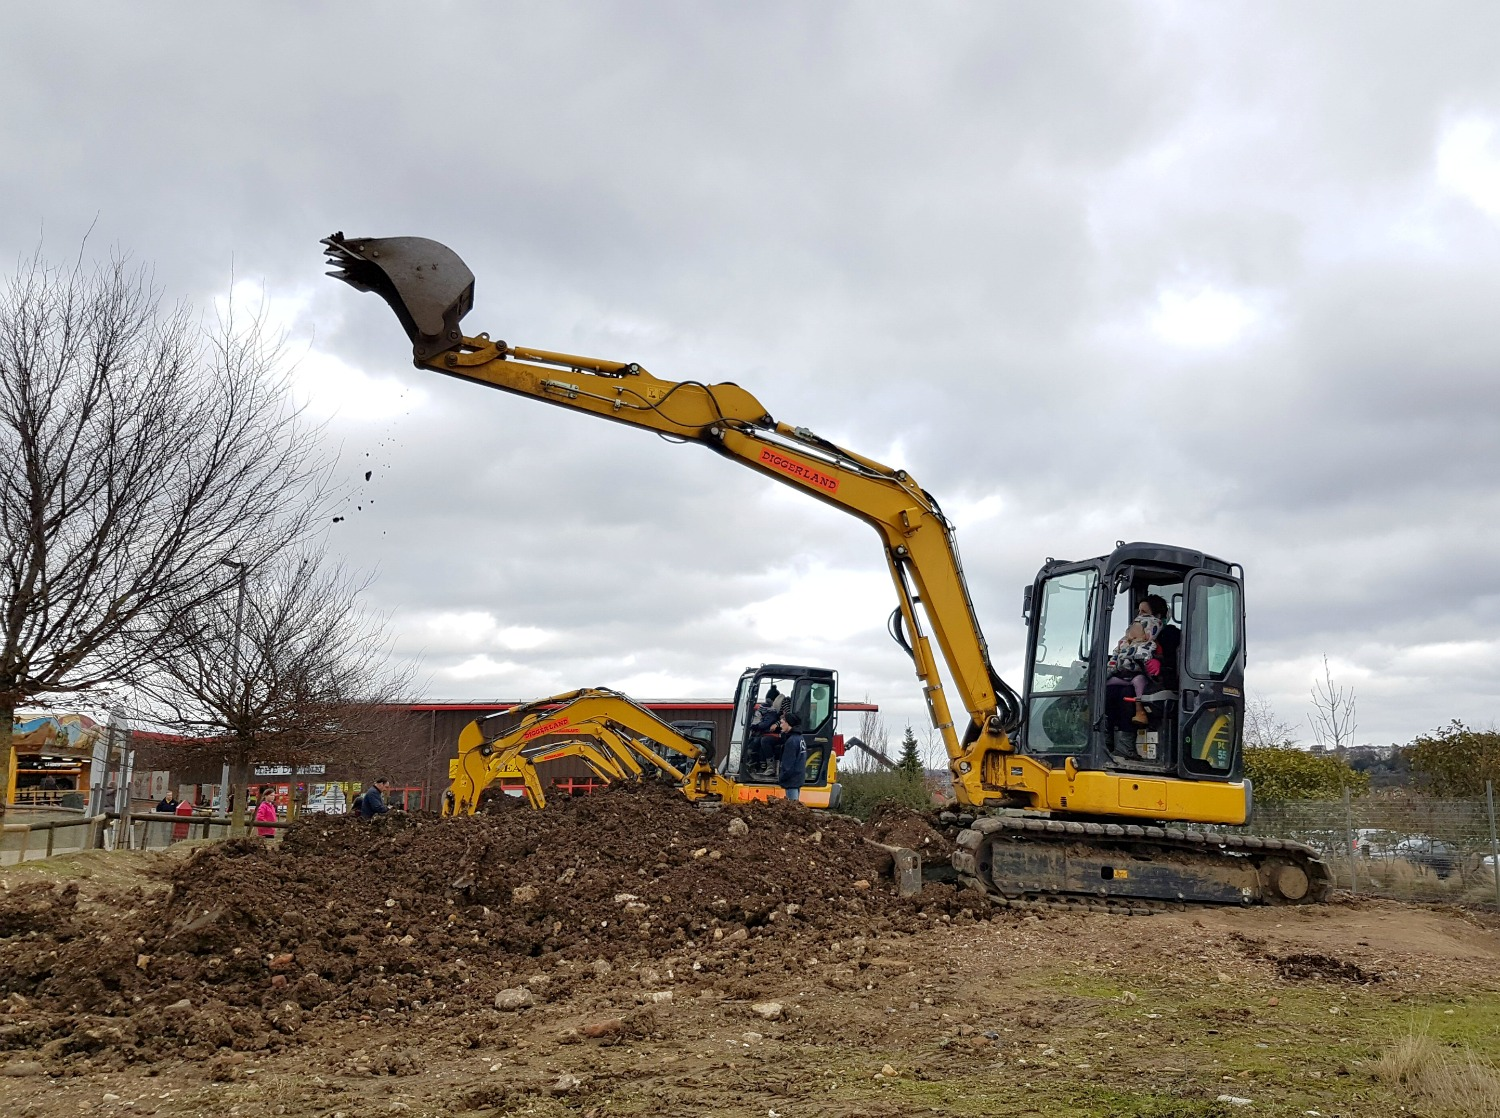 The biggest digger at Diggerland Kent - one of the attractions on this family day out